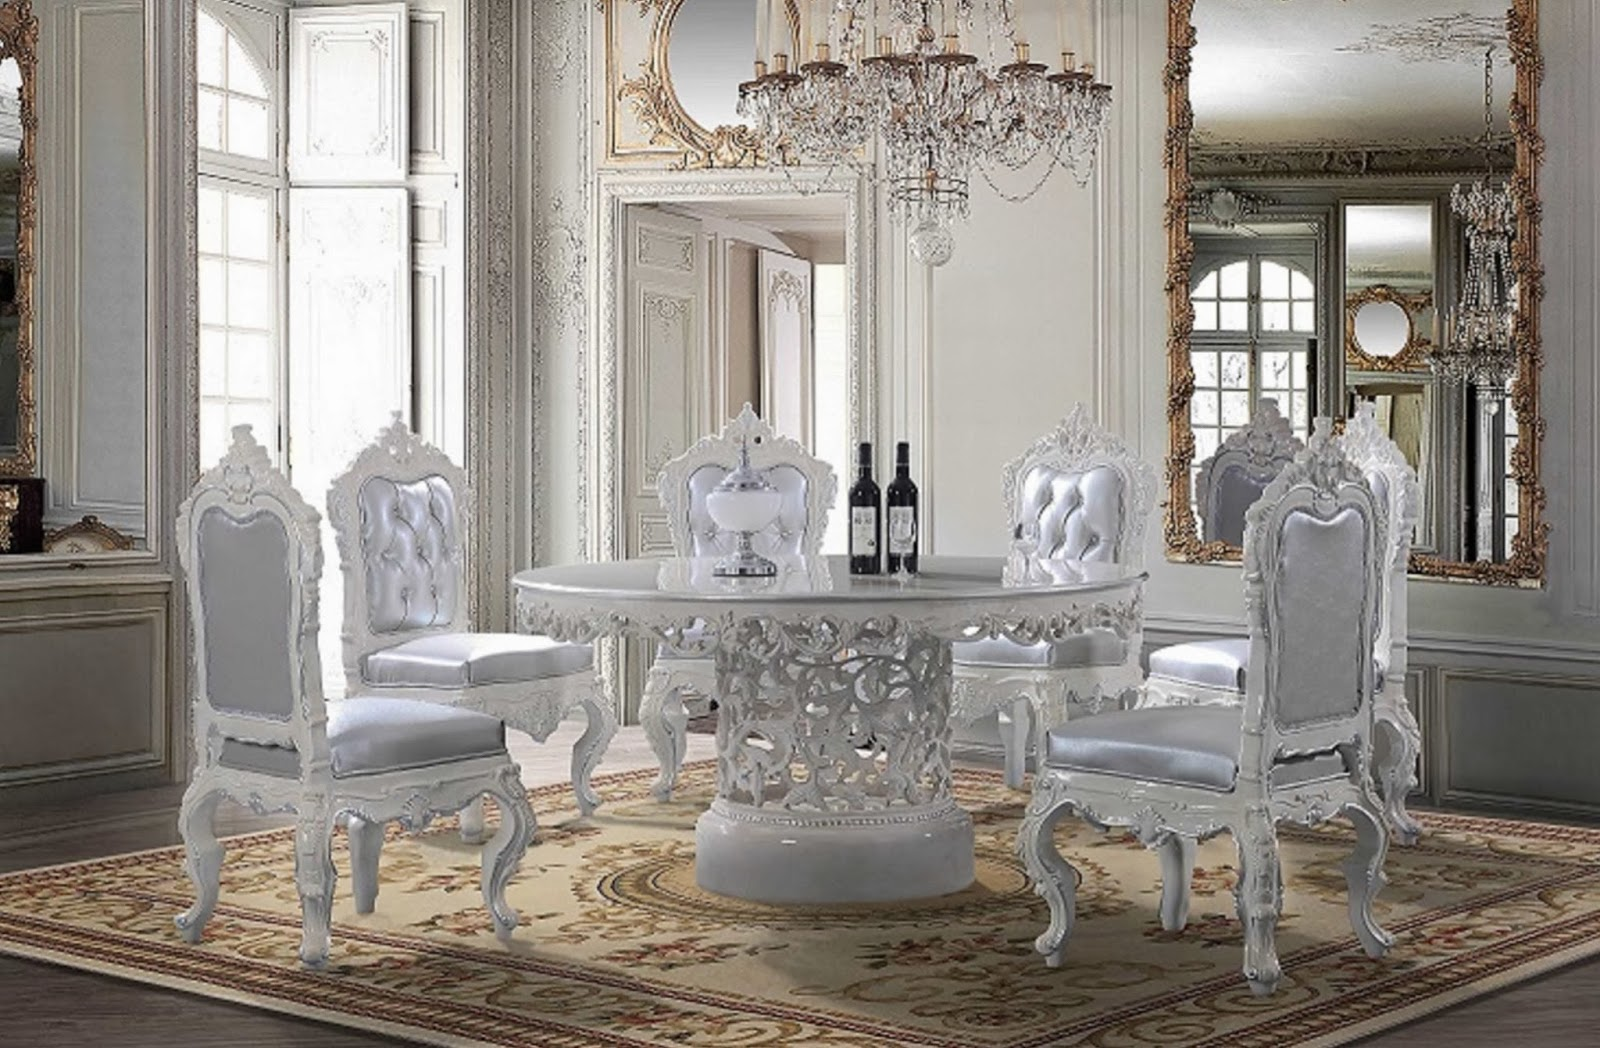 Dealshopperz Com Hds Victorian Round Dining Table With Decorative Center And White Decorative